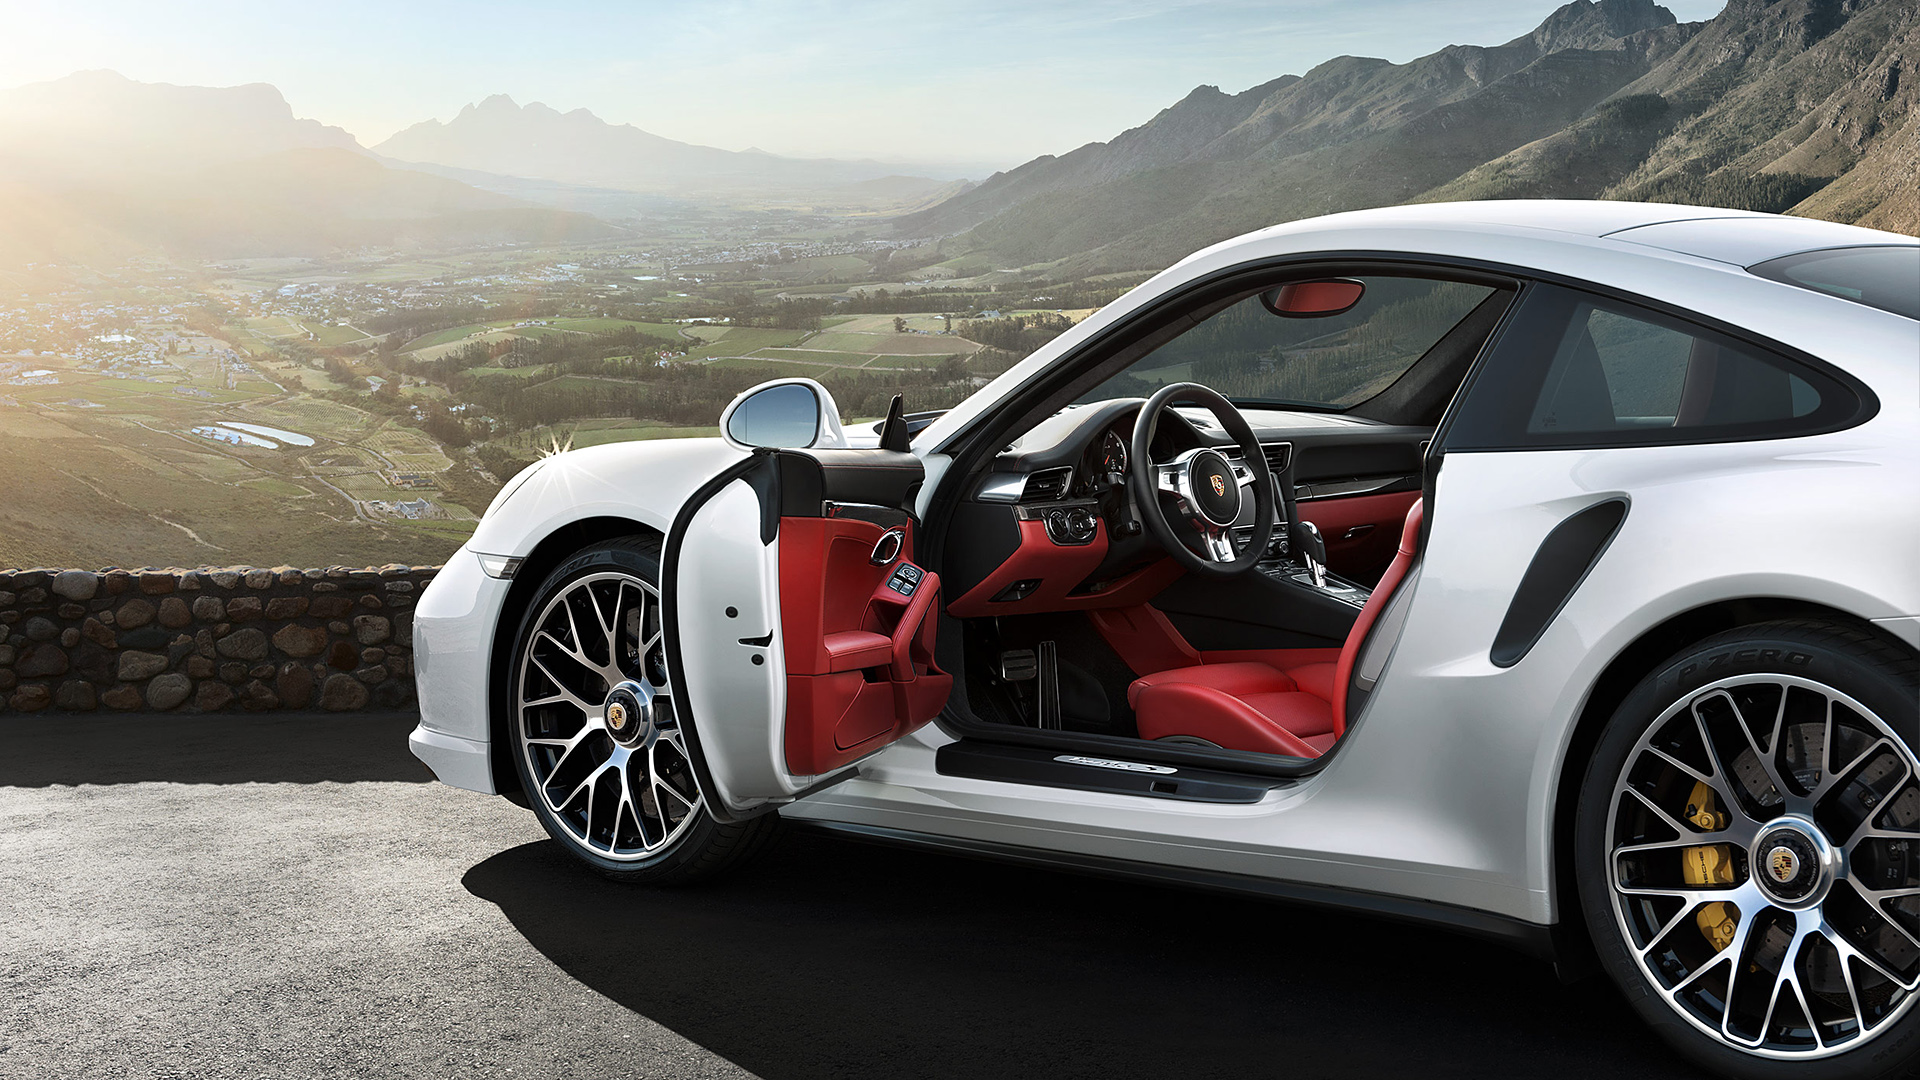 2014 Porsche 911 Turbo S Wallpapers HD Images   WSupercars 1920x1080